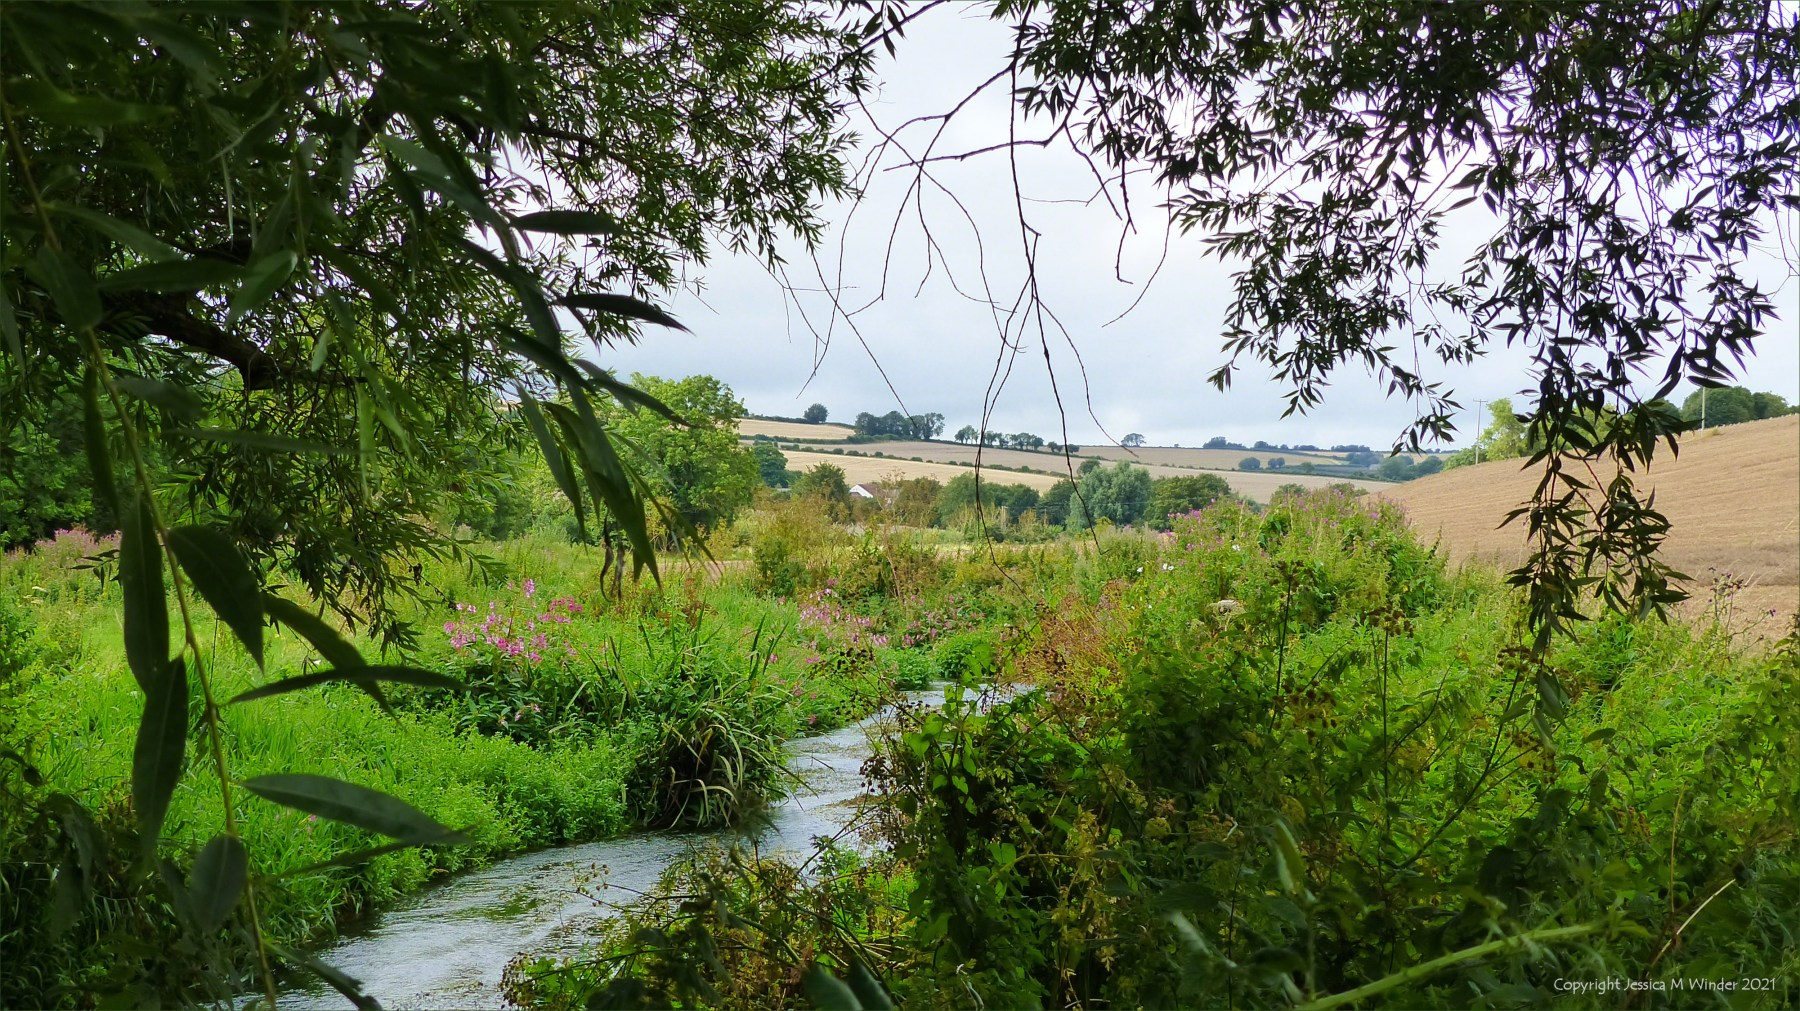 Countryside view with river and fields at Cerne Valley